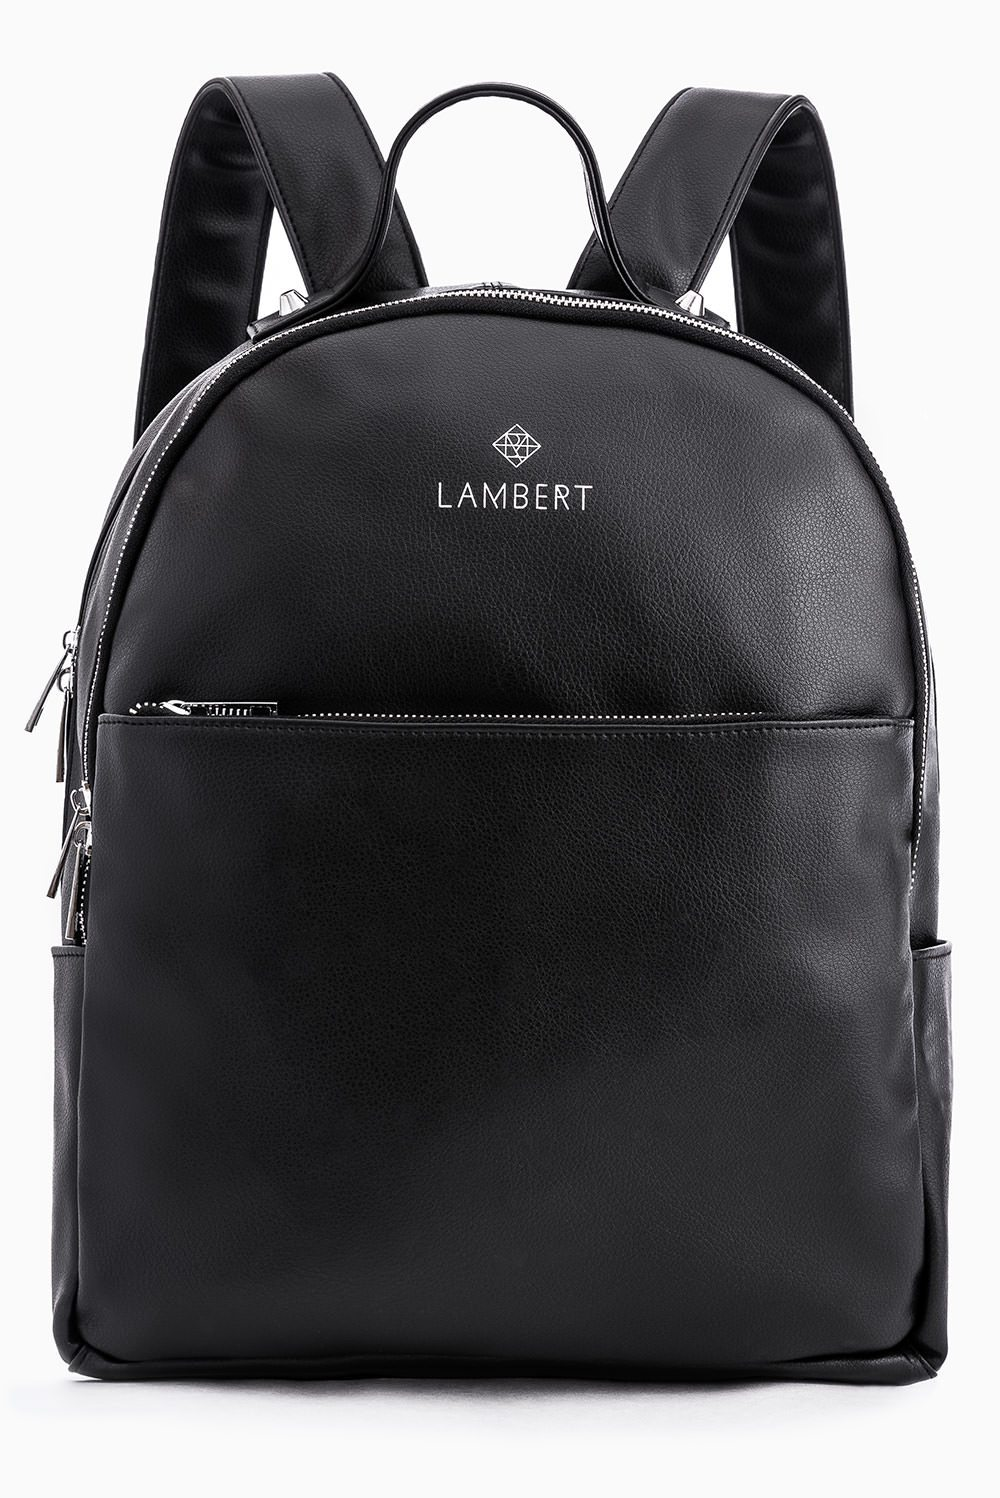 Lambert Vegan Backpack